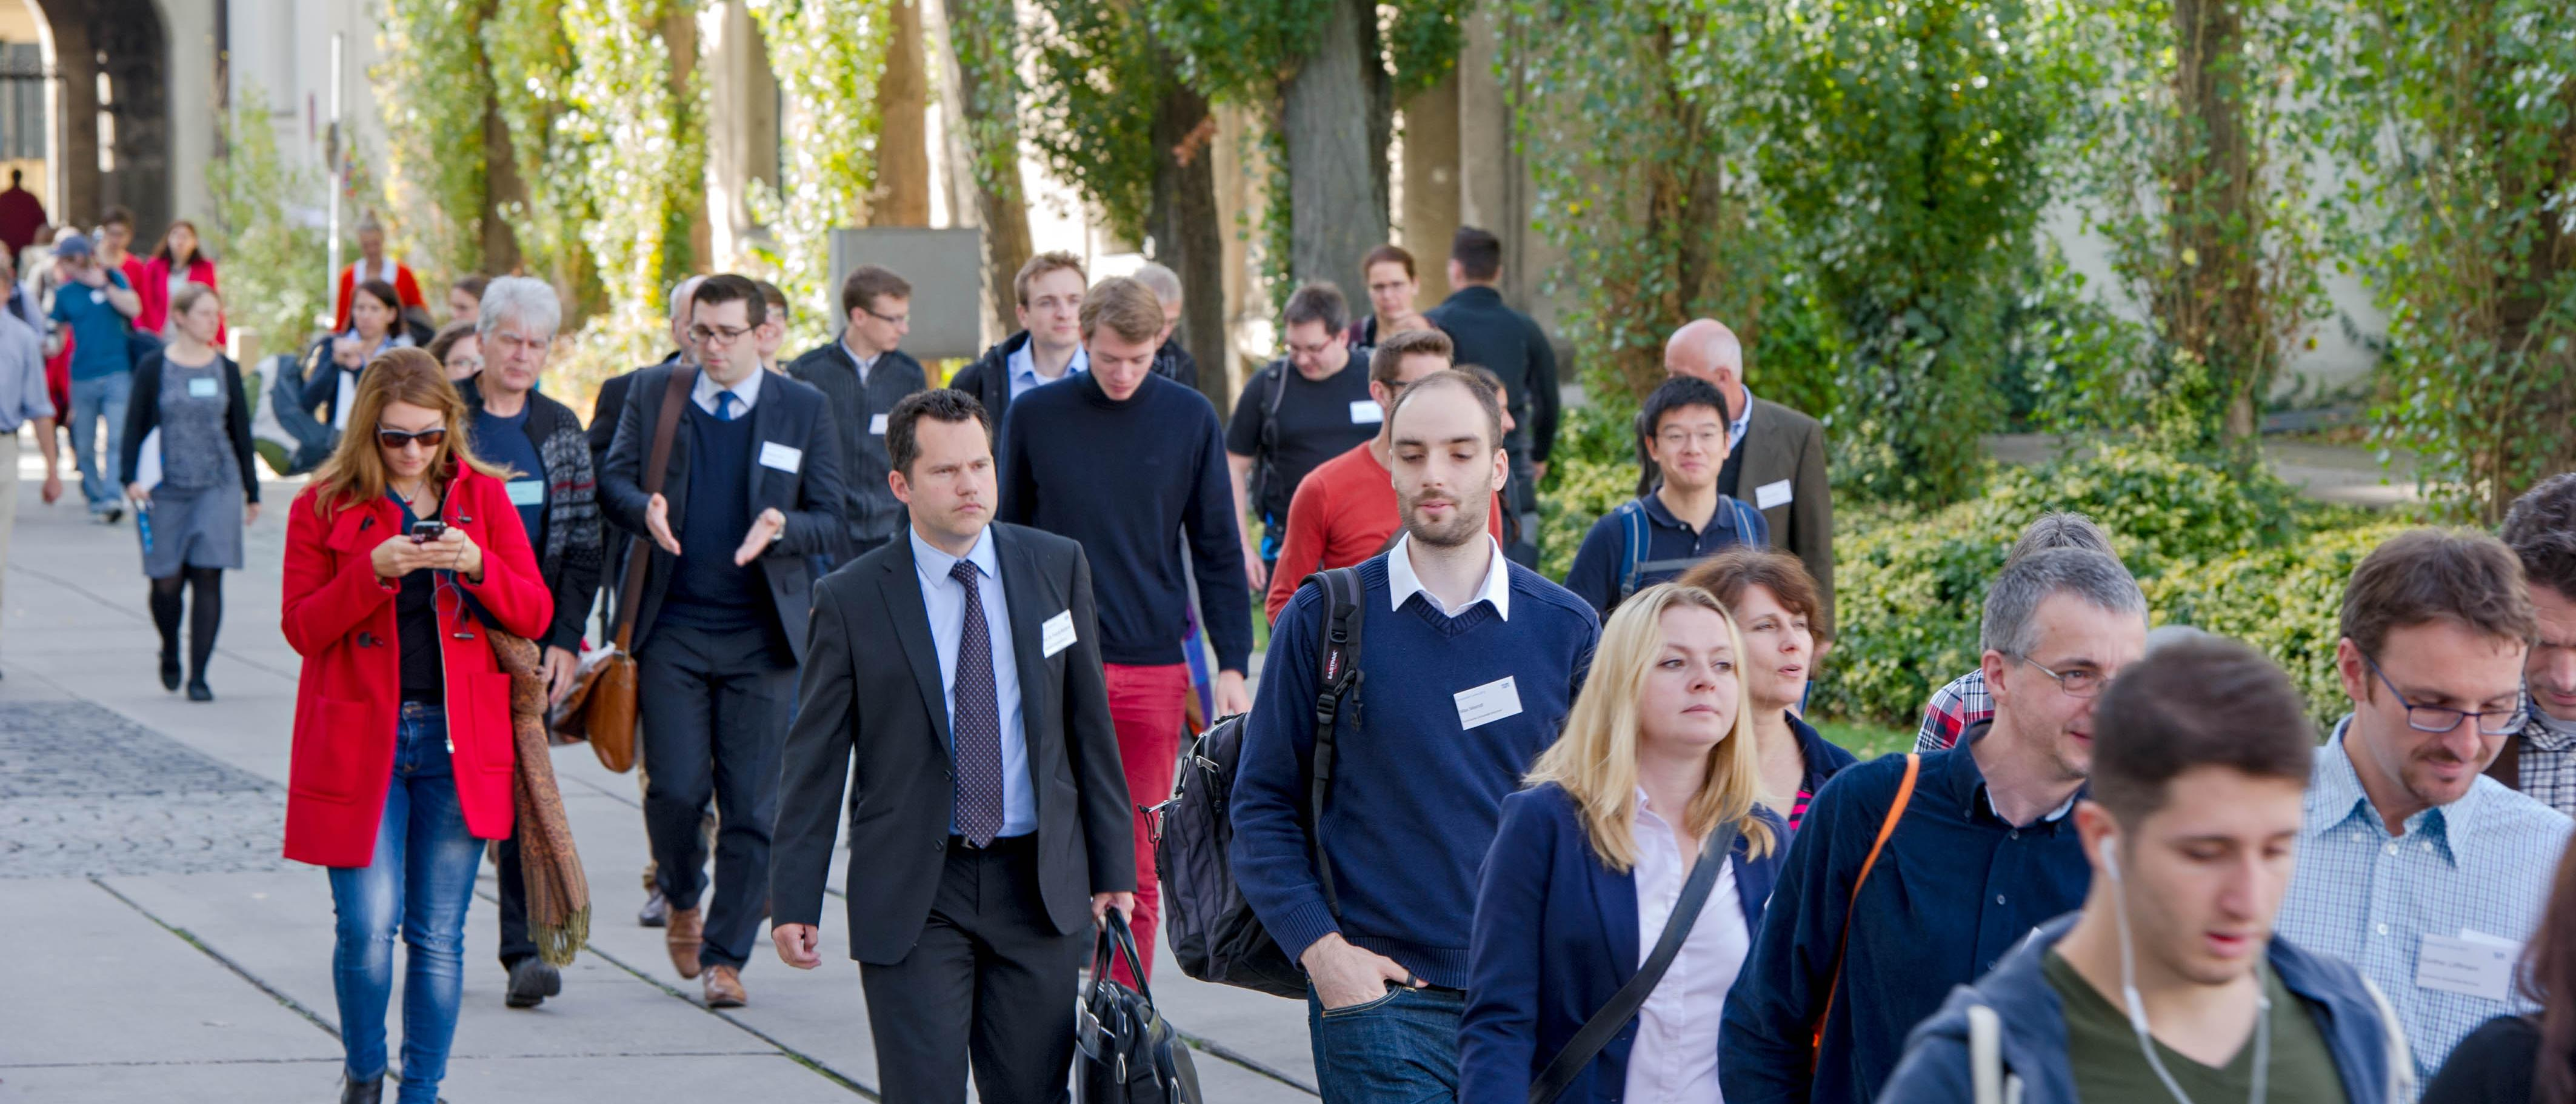 Participants of the Teaching Symposium take a stroll around the campus